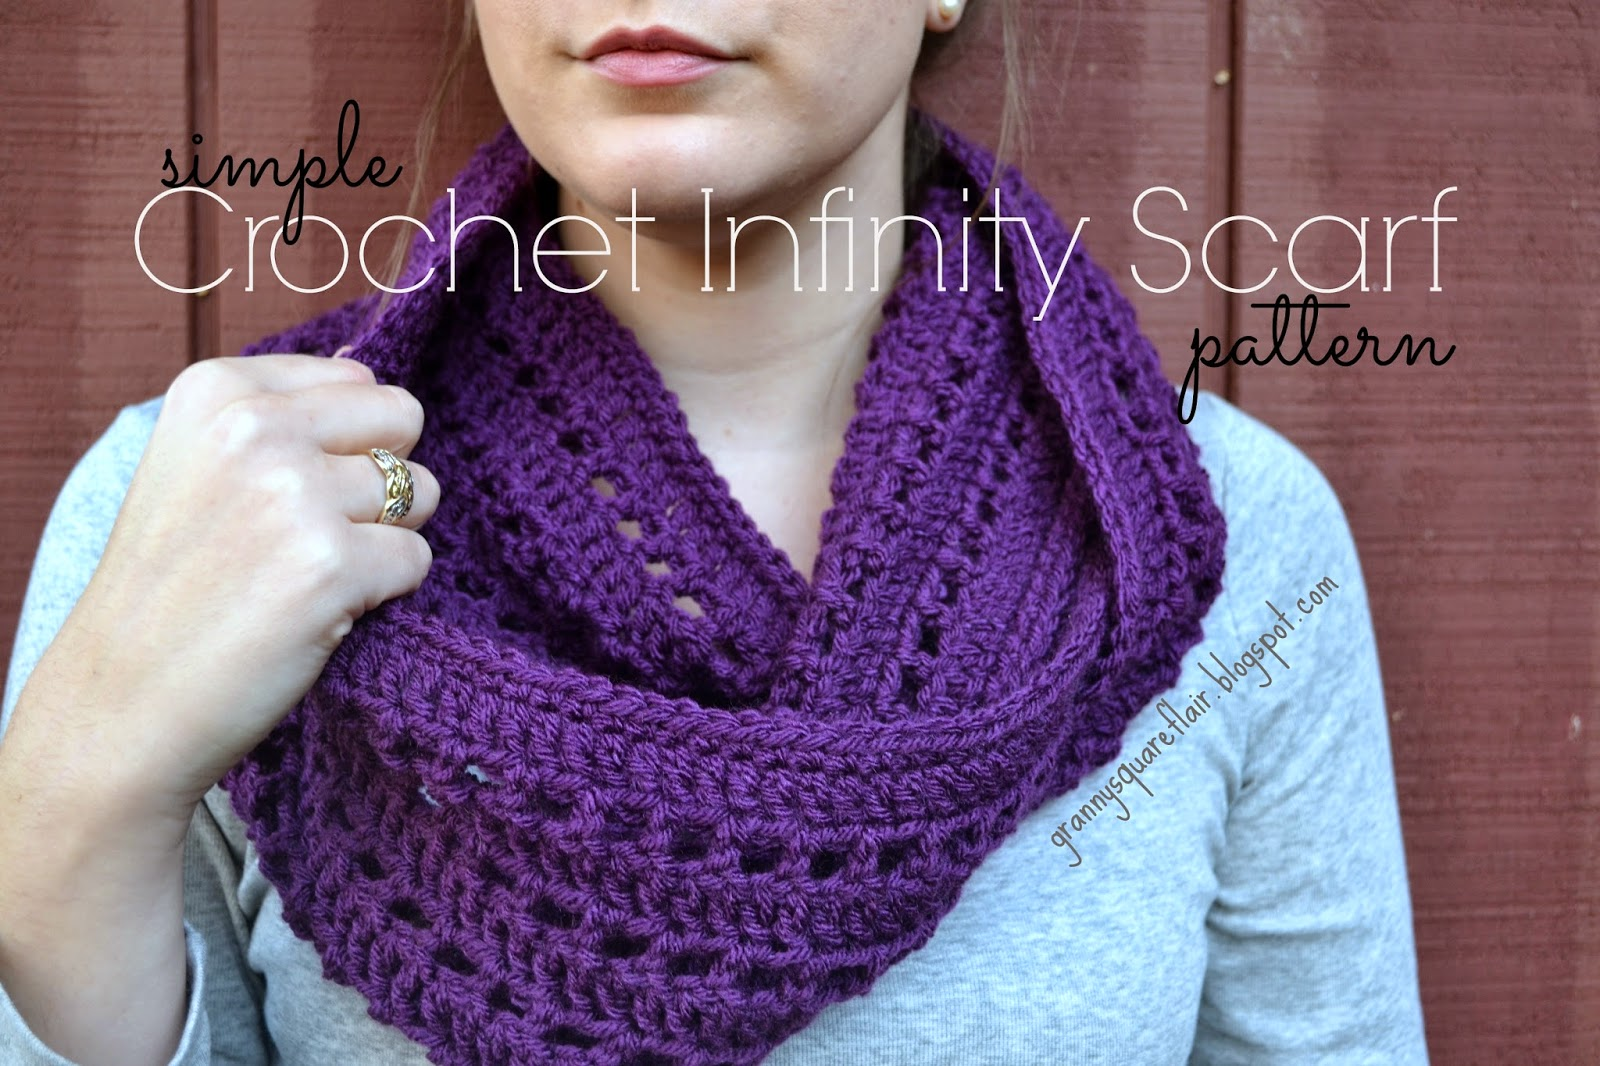 simple_crochet_infinity_scarf_pattern_title.jpg